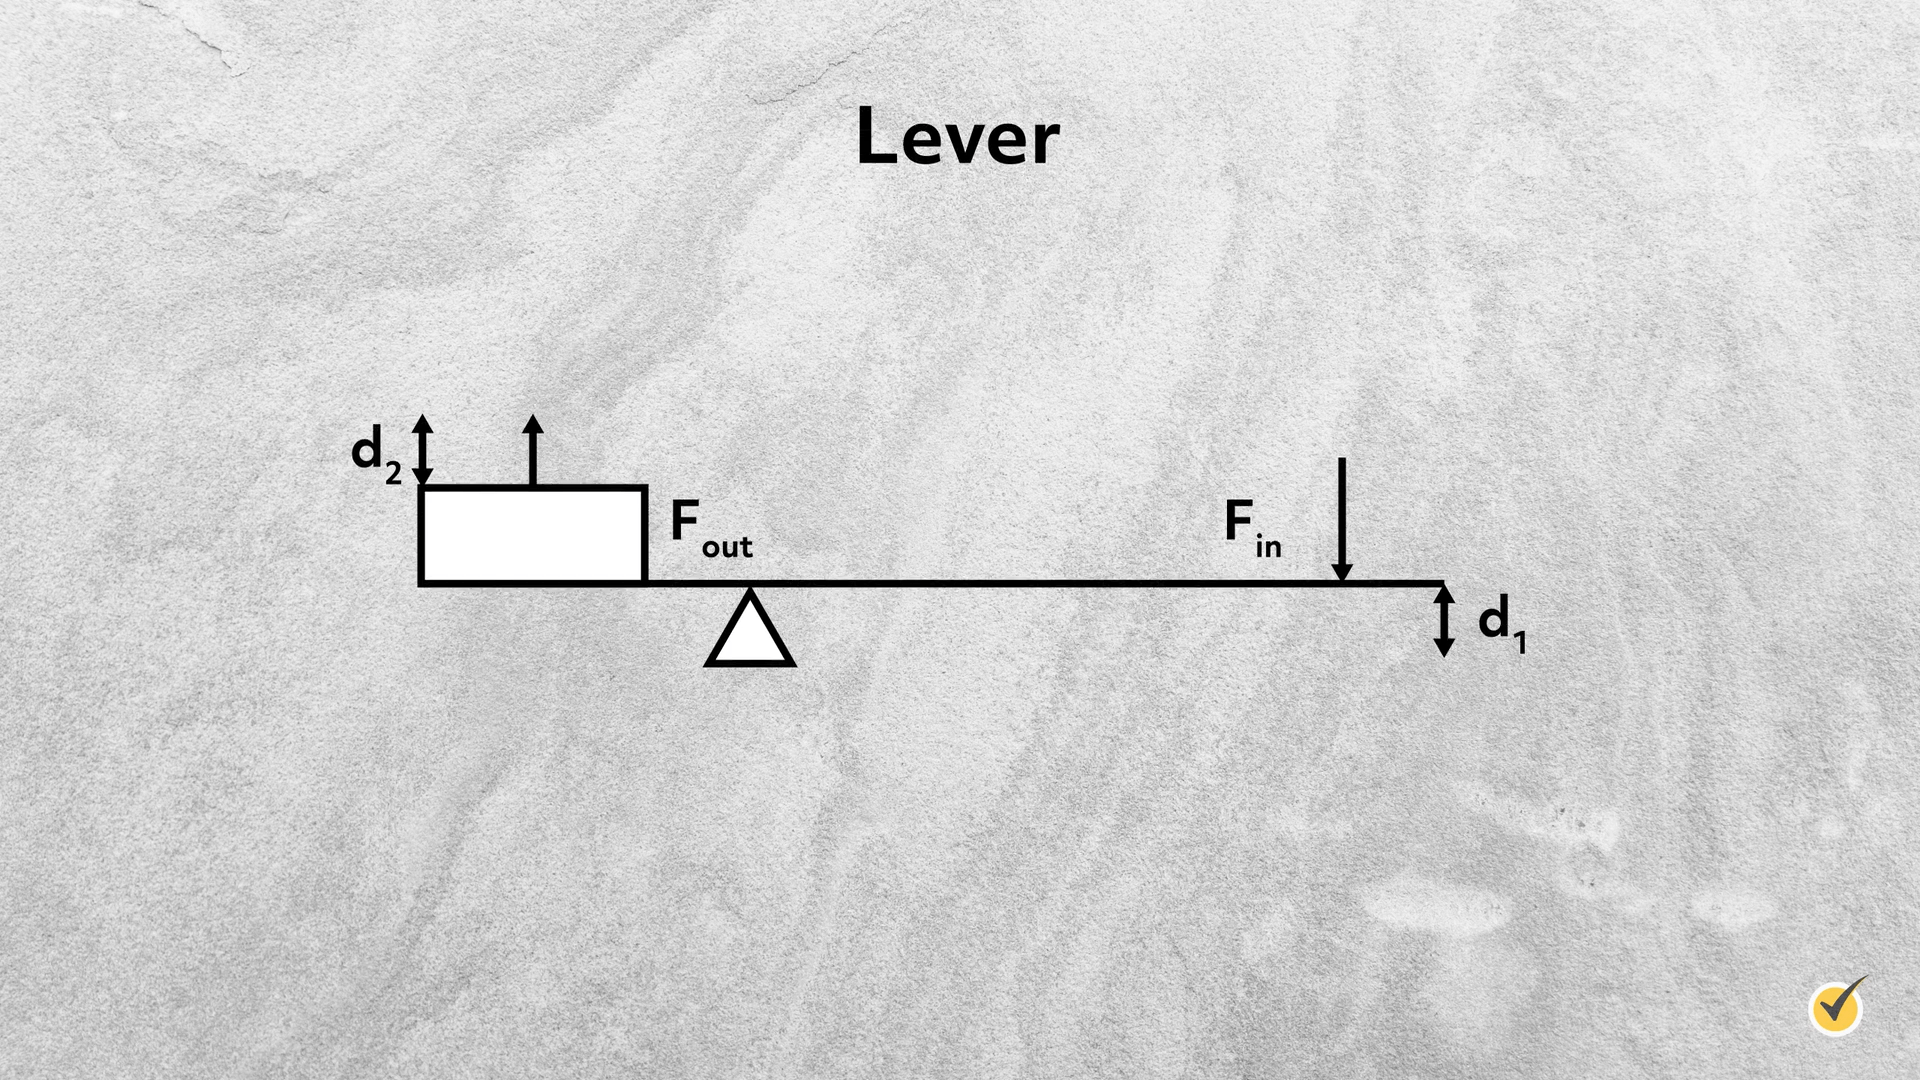 Image of a lever.